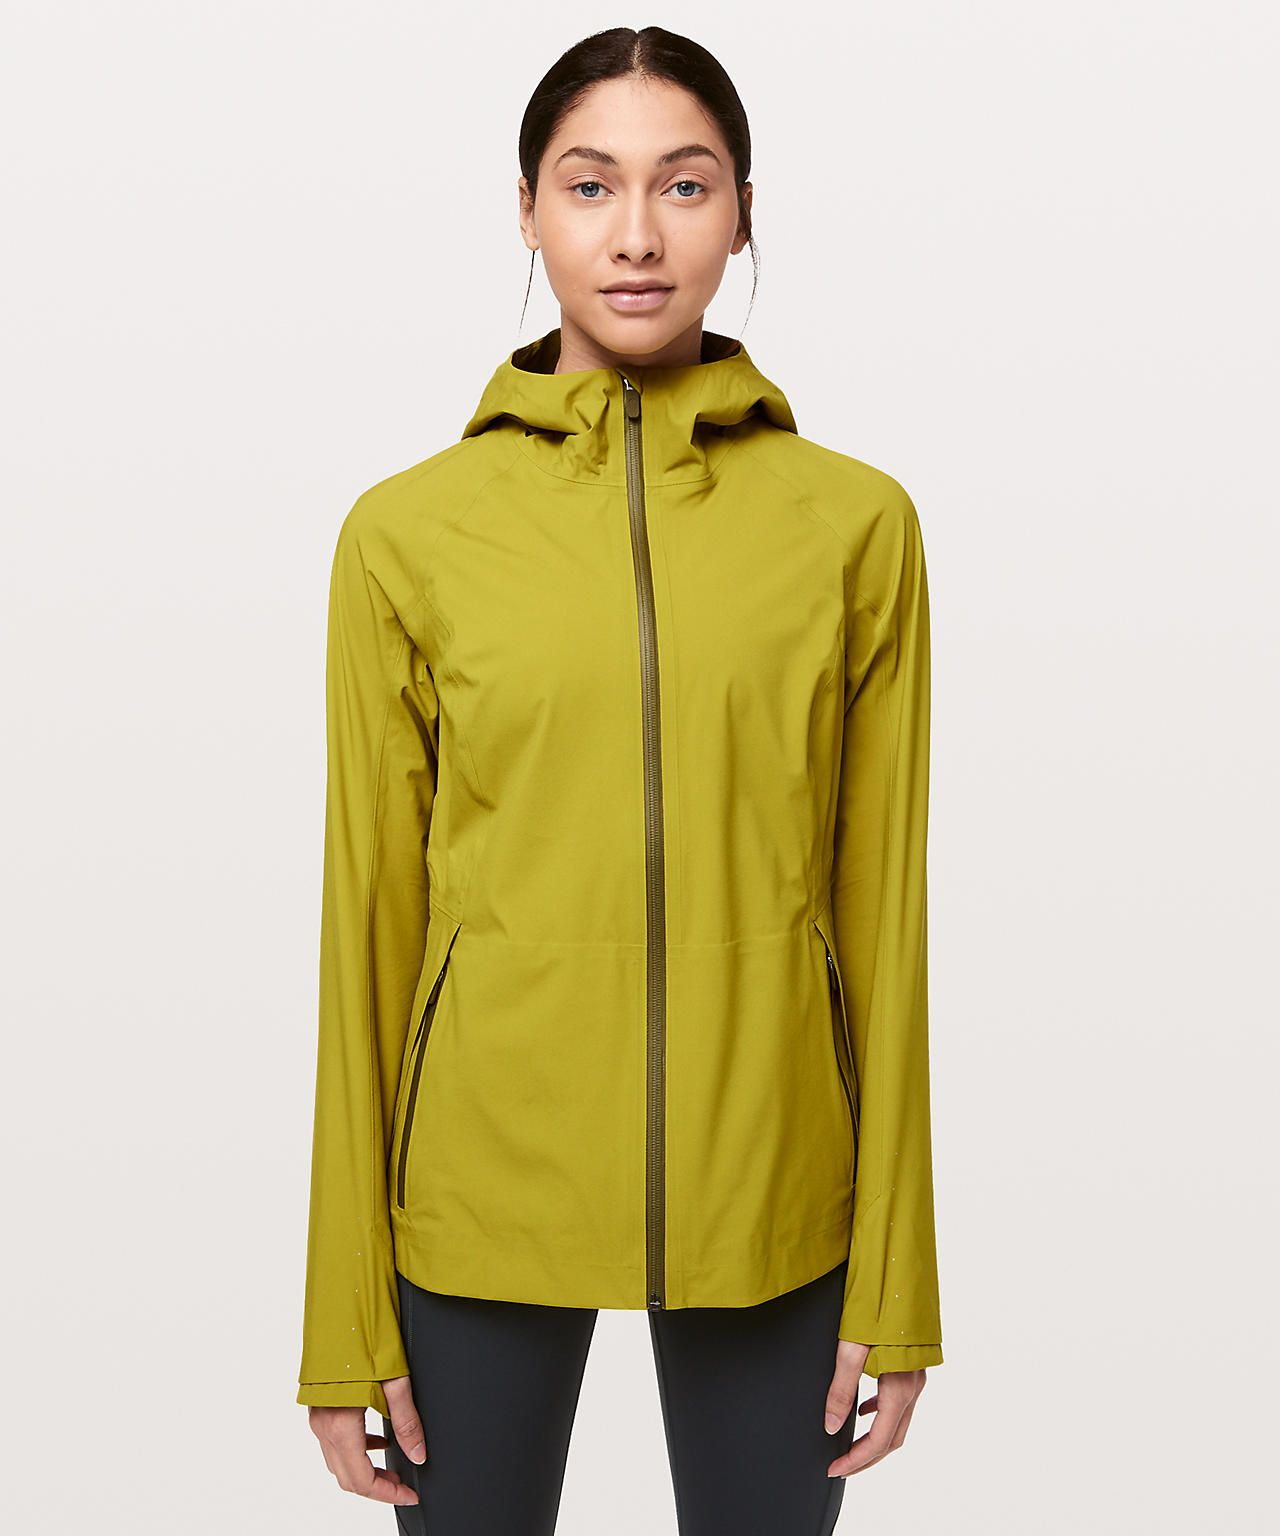 Golden Lime The Rain Is Calling Jacket Ii Online Only Technical Clothing Jackets For Women Outerwear Jackets [ 1536 x 1280 Pixel ]